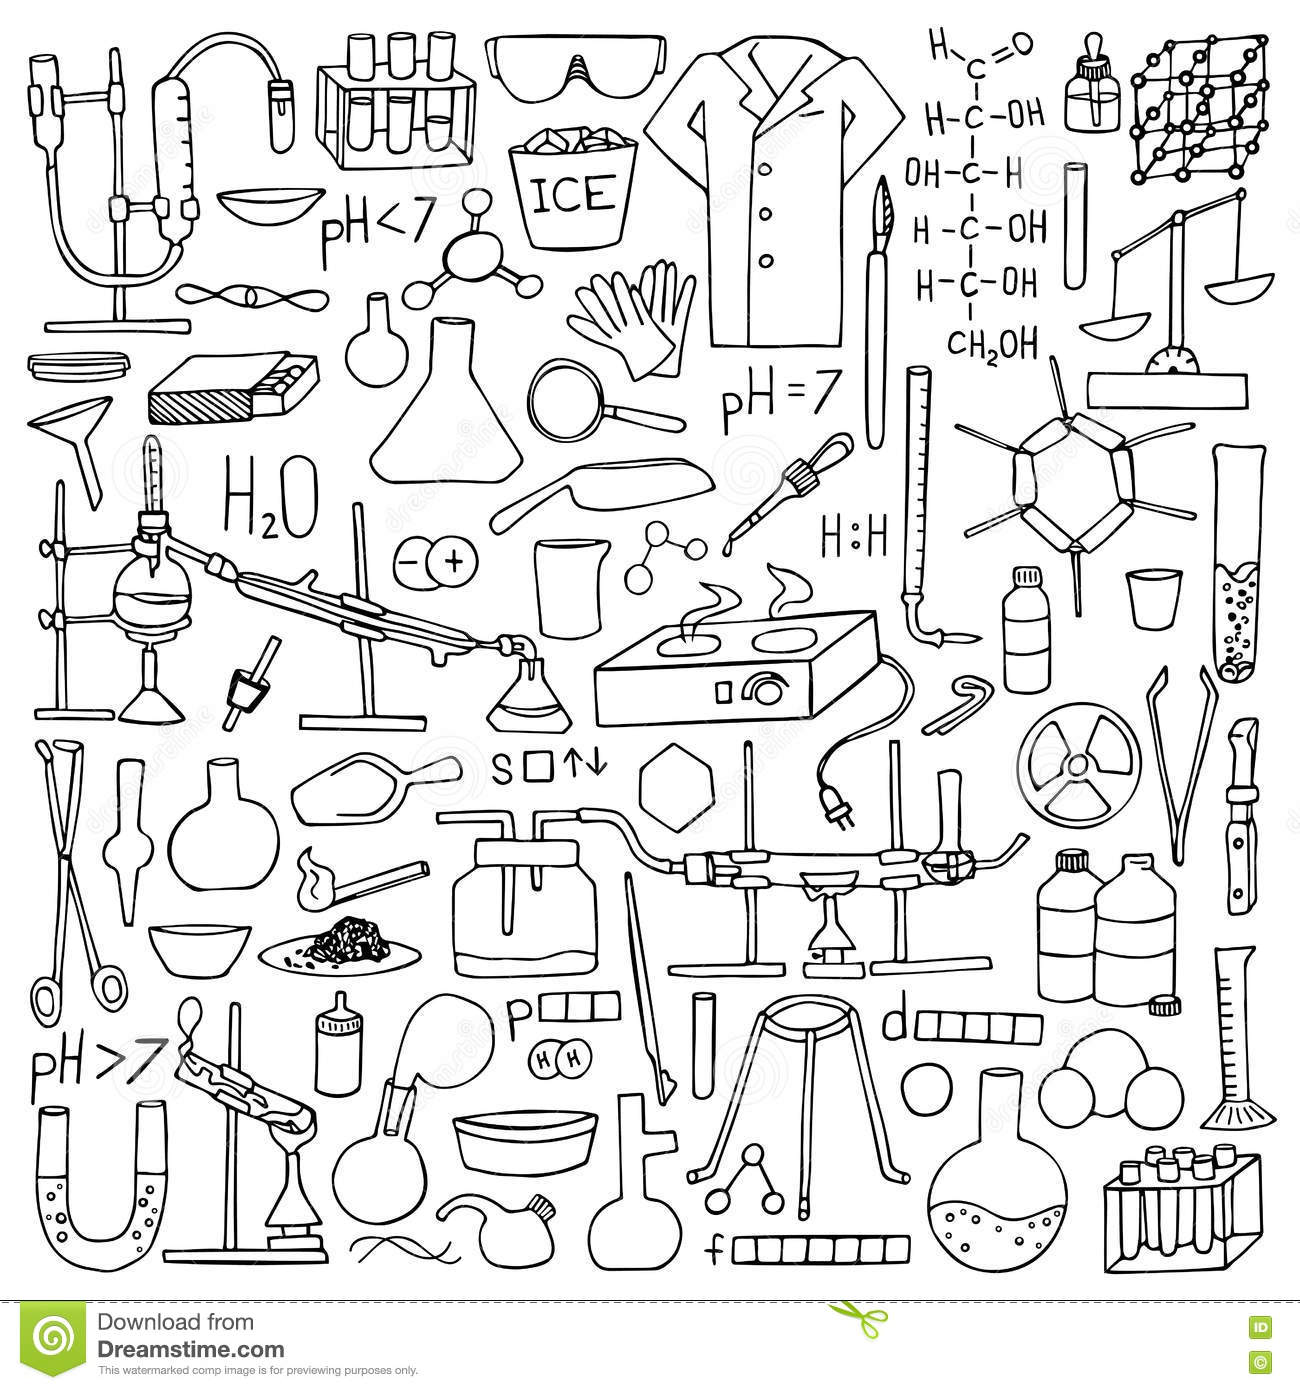 Chemistry doodle set stock vector. Illustration of